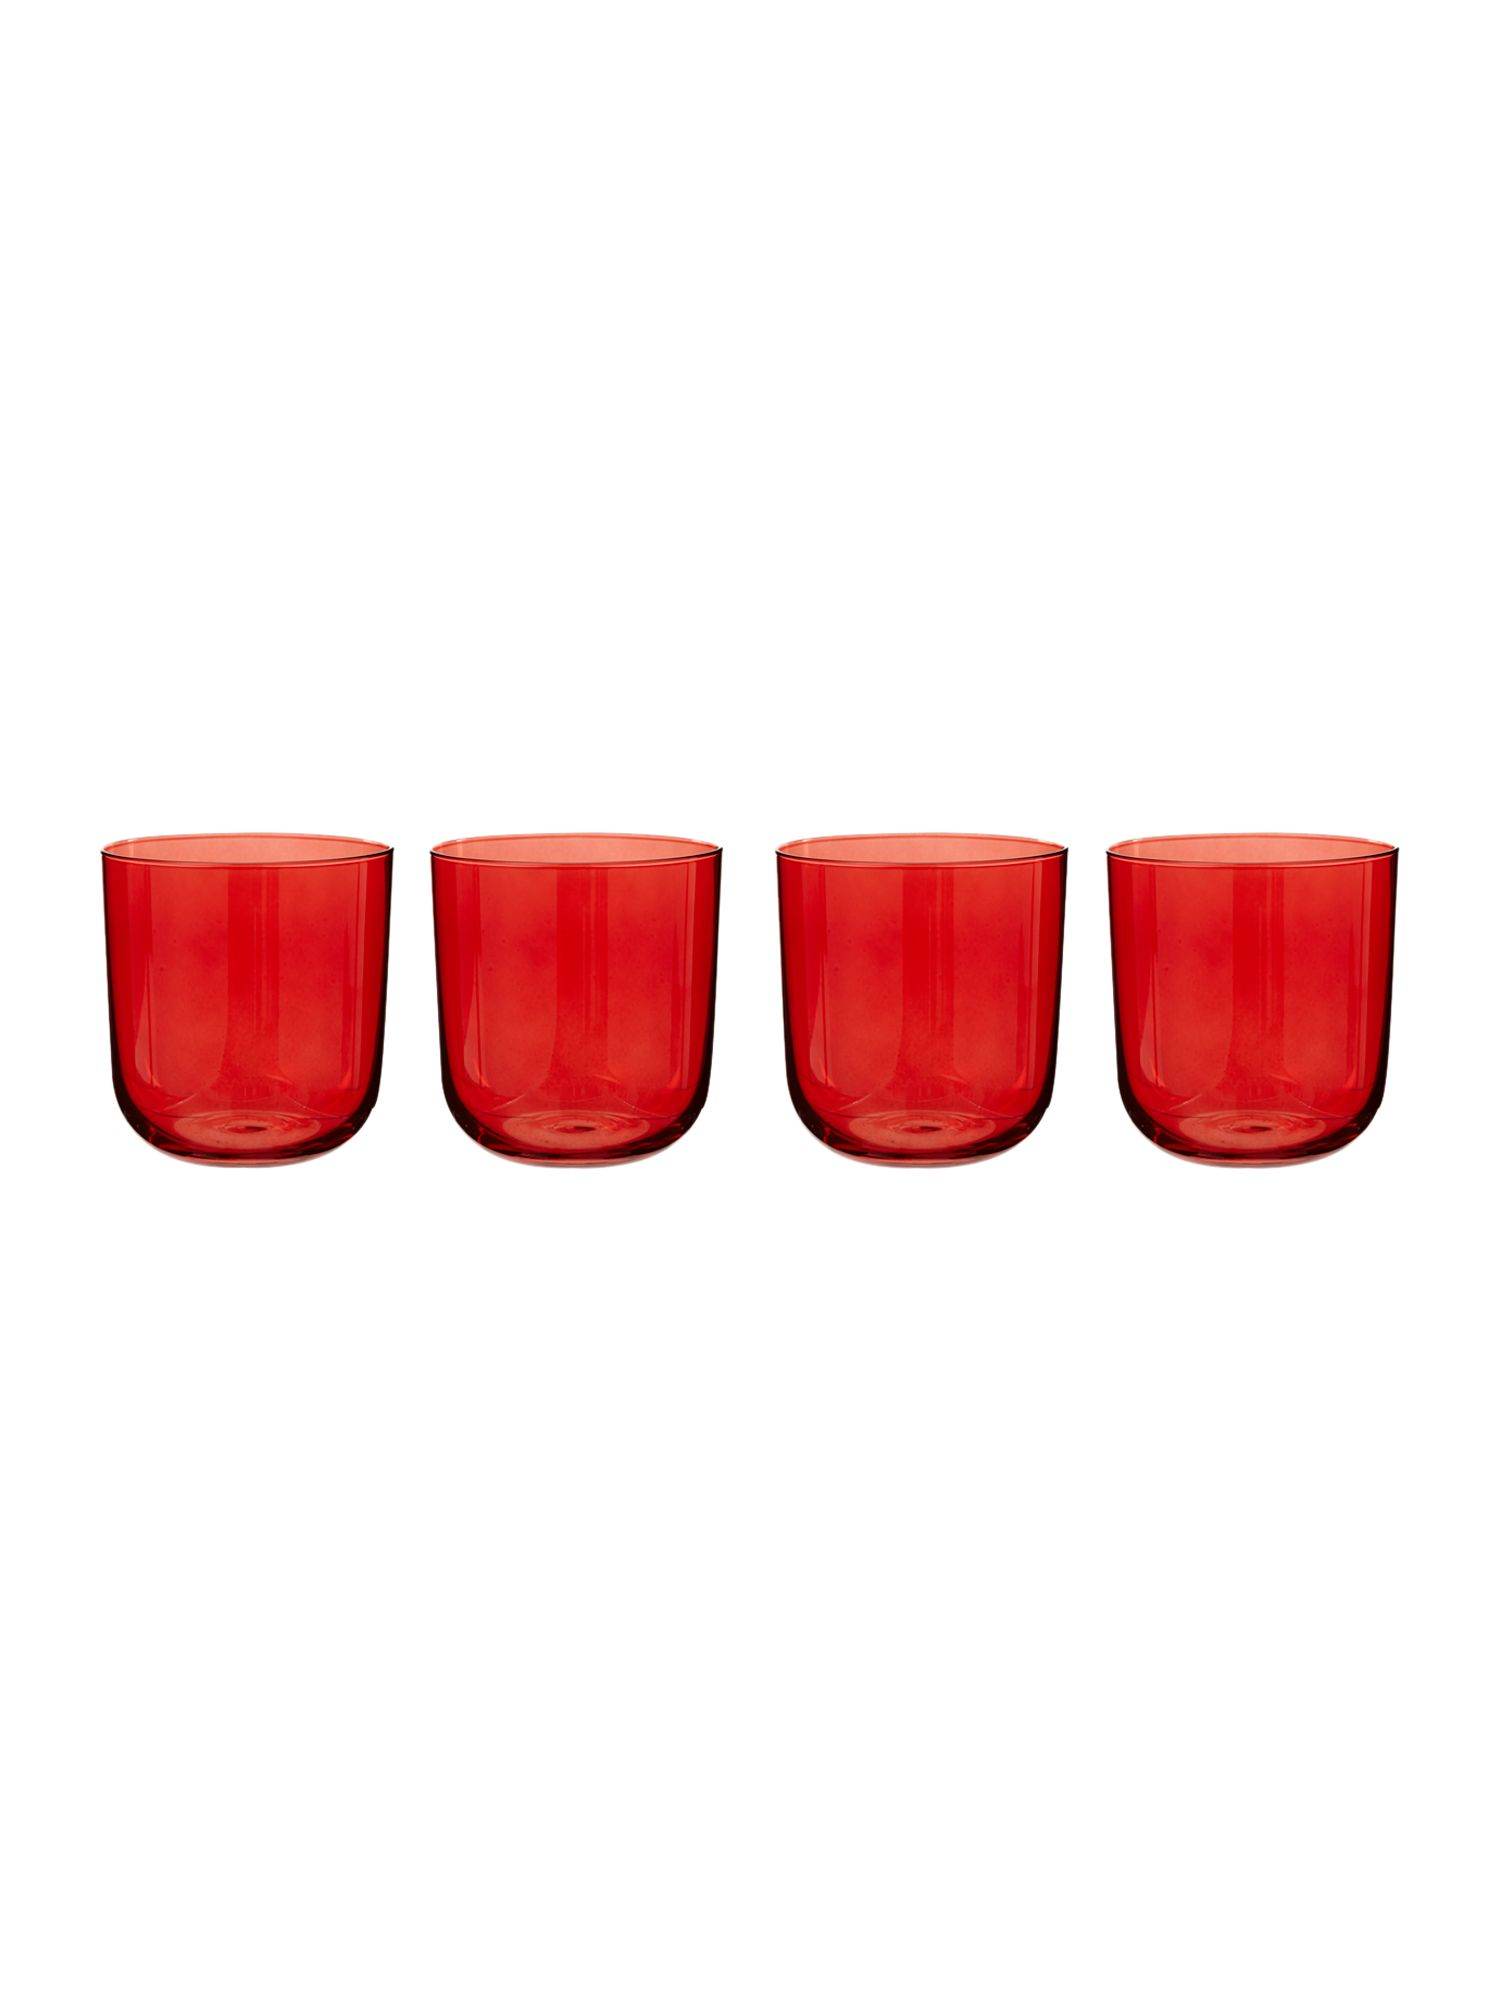 Centro Berry Tumbler, set of 4